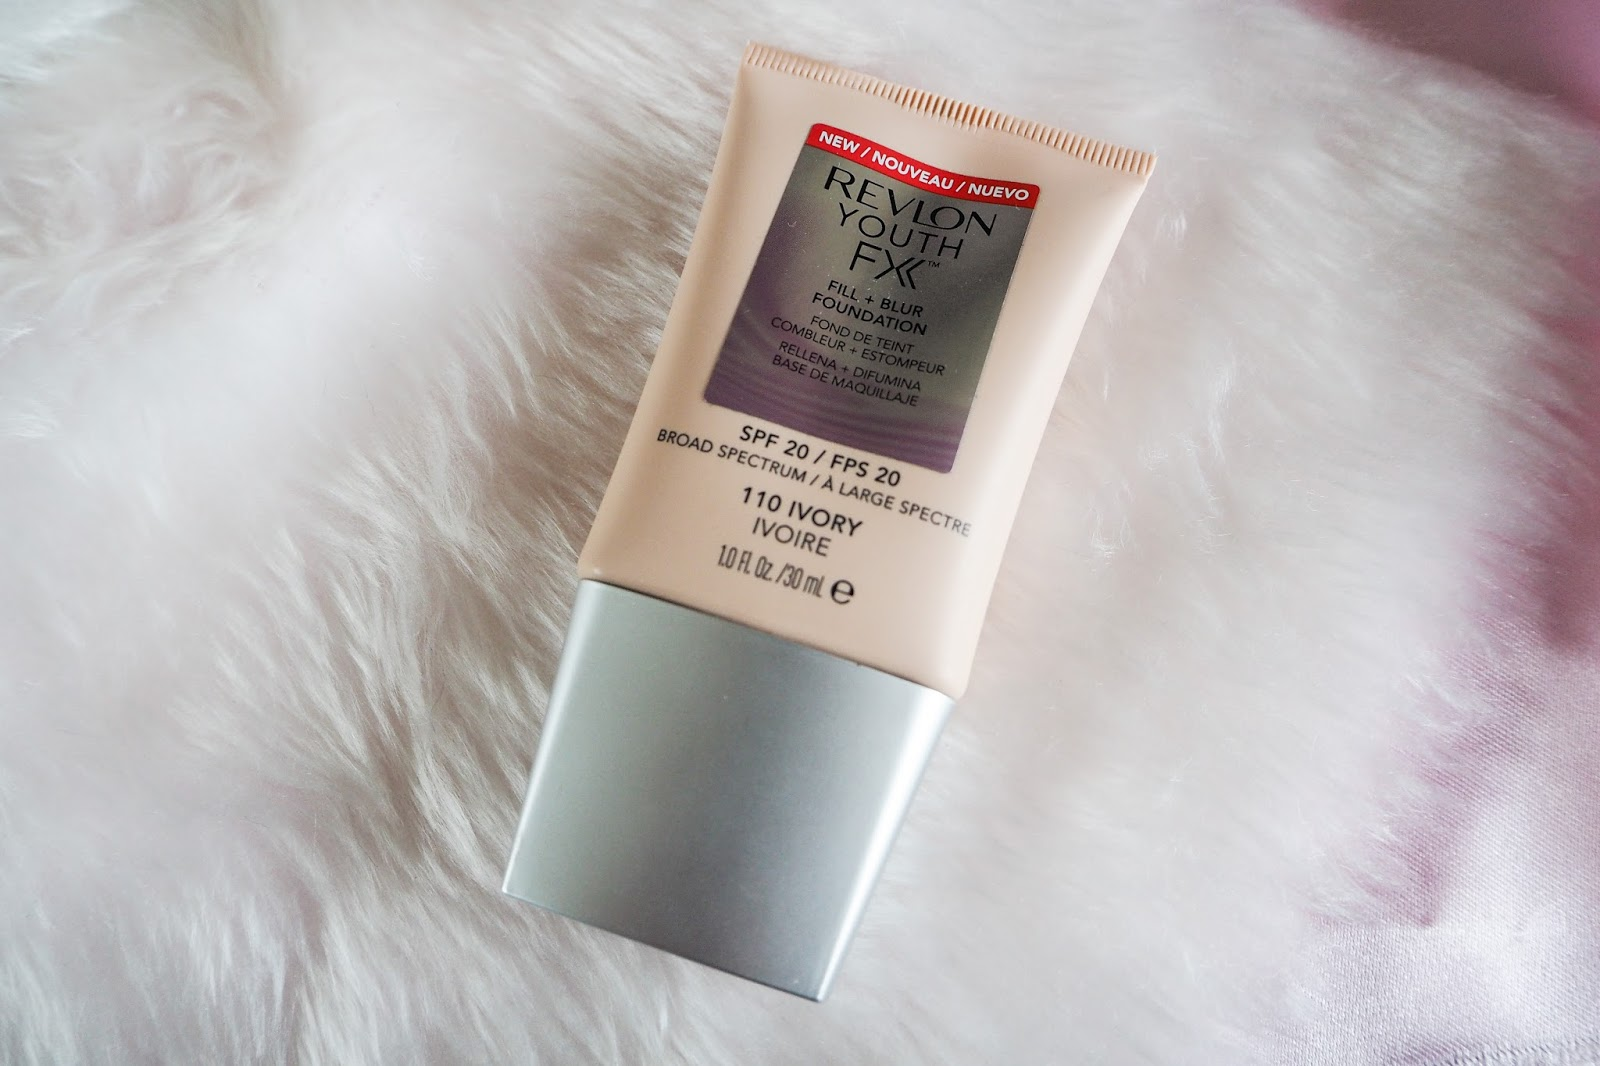 Revlon Youth Fix Fill and Blur Foundation Review